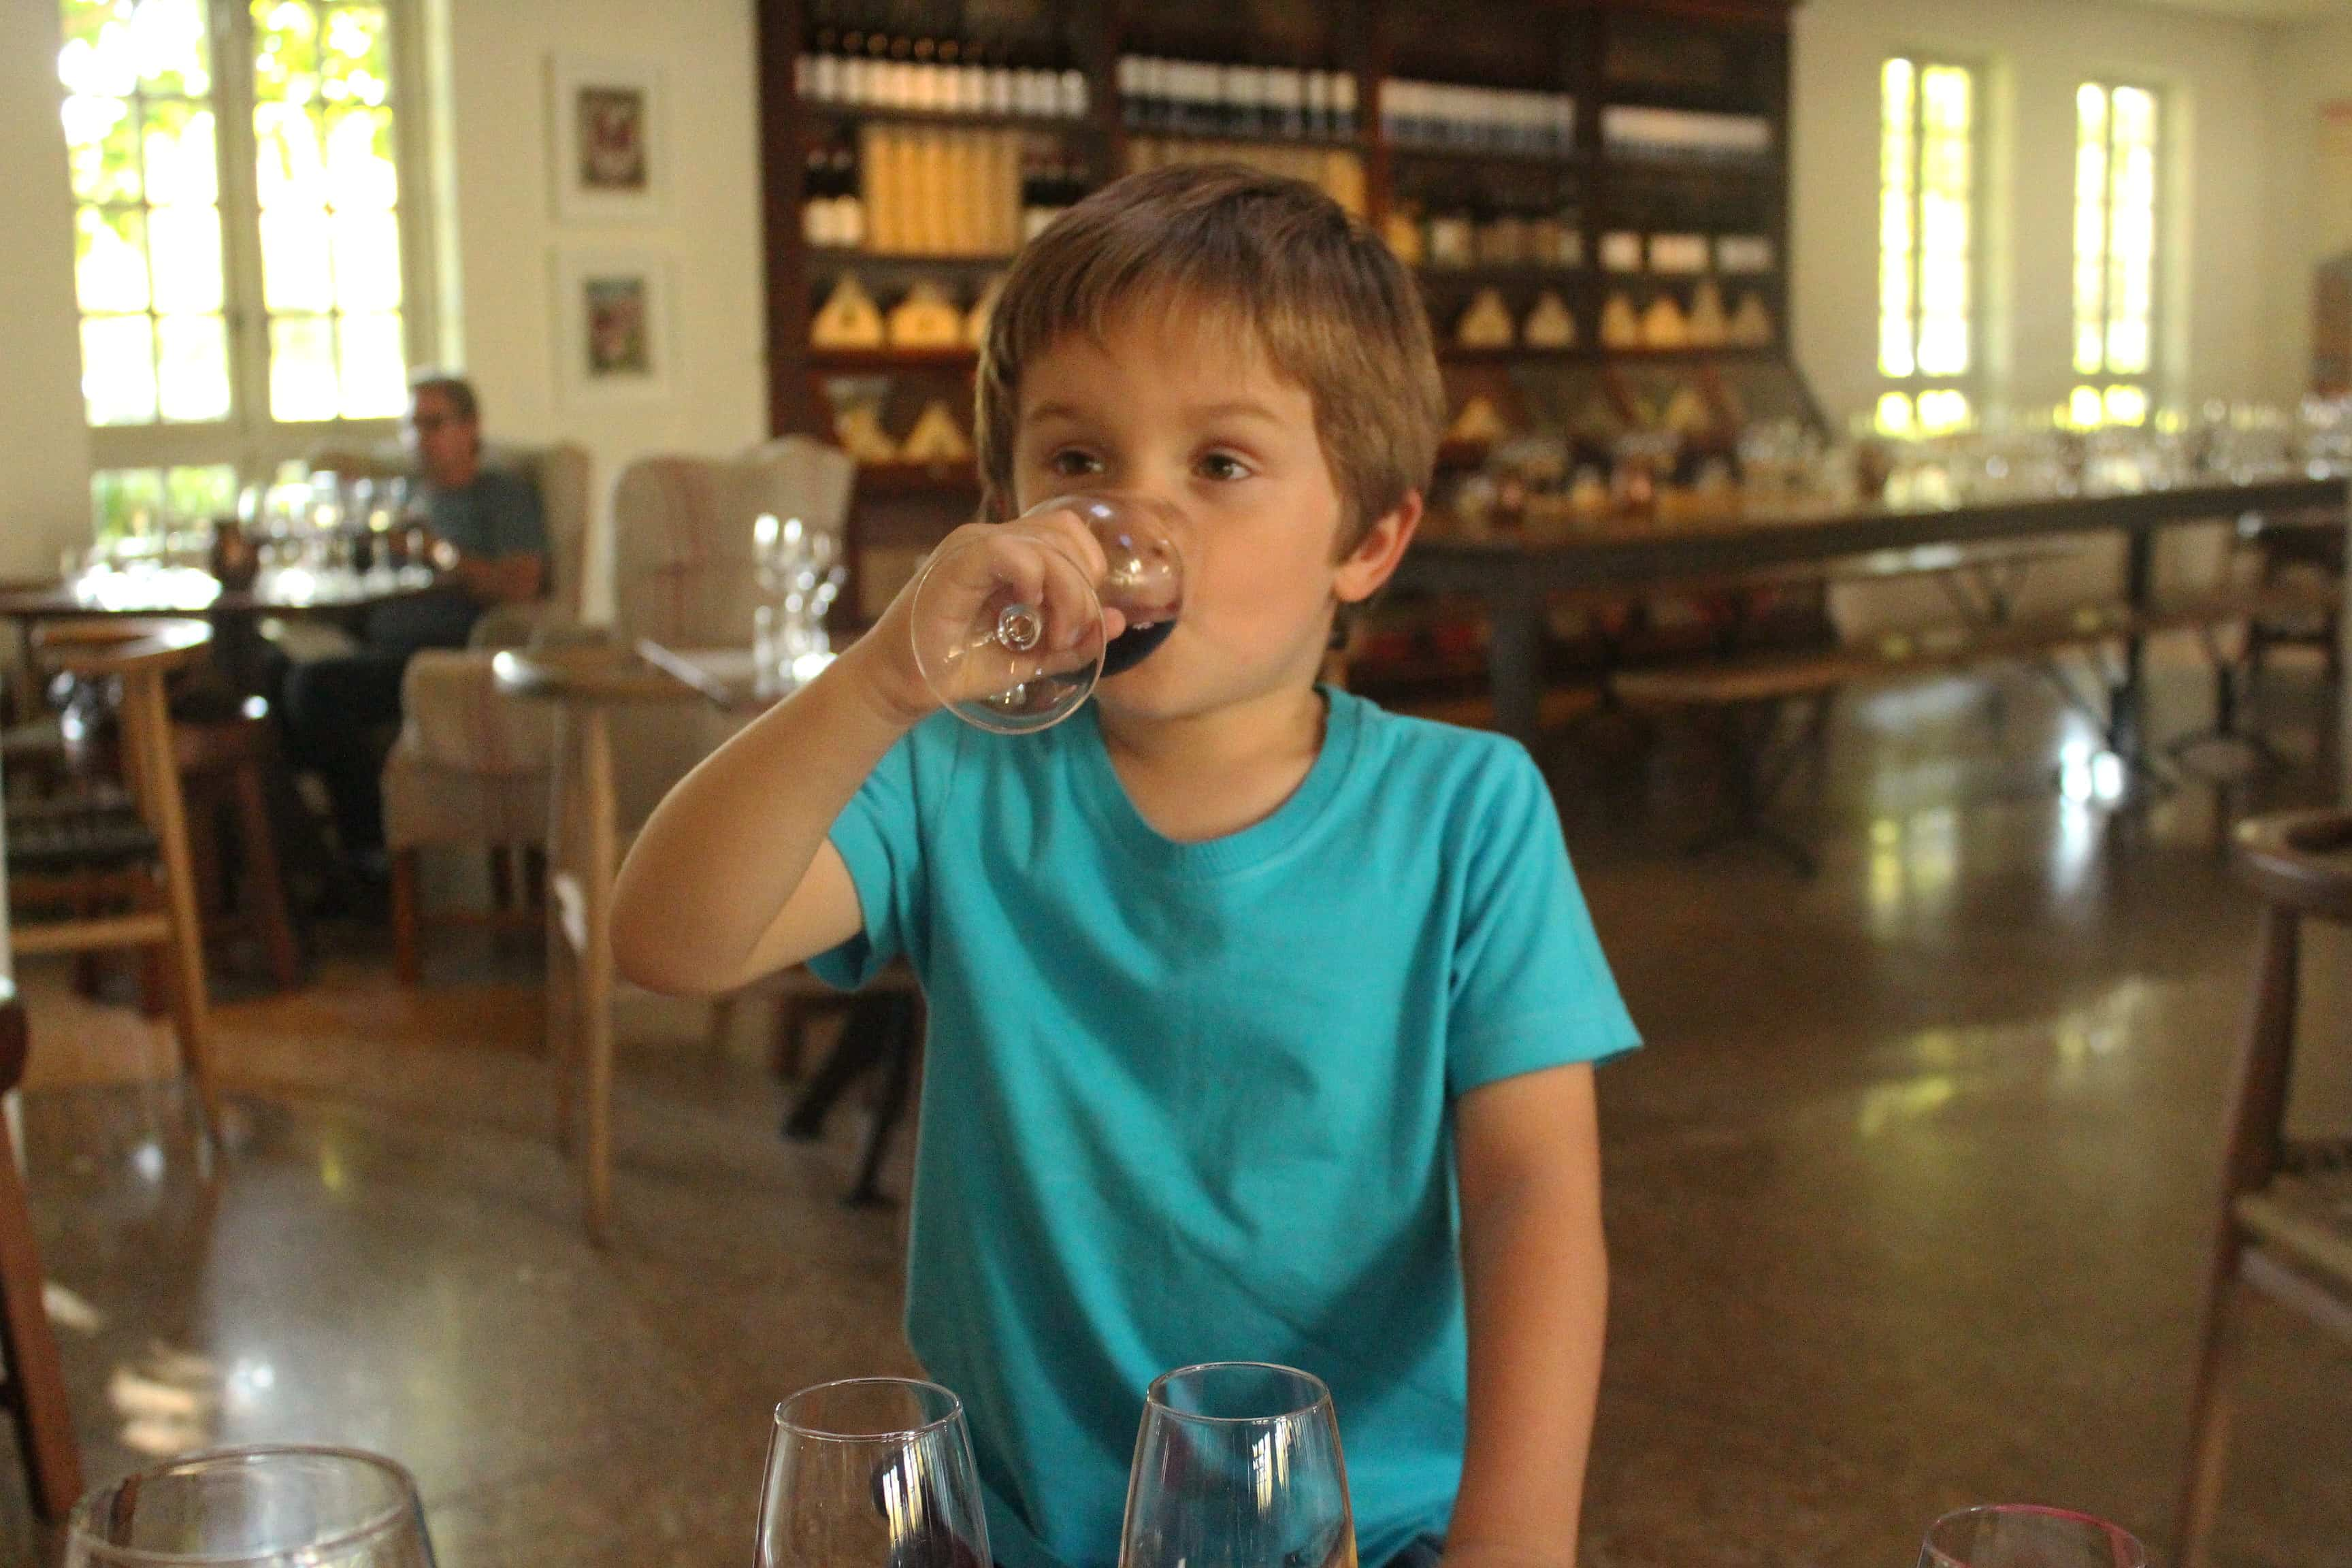 Boy drinking grape juice